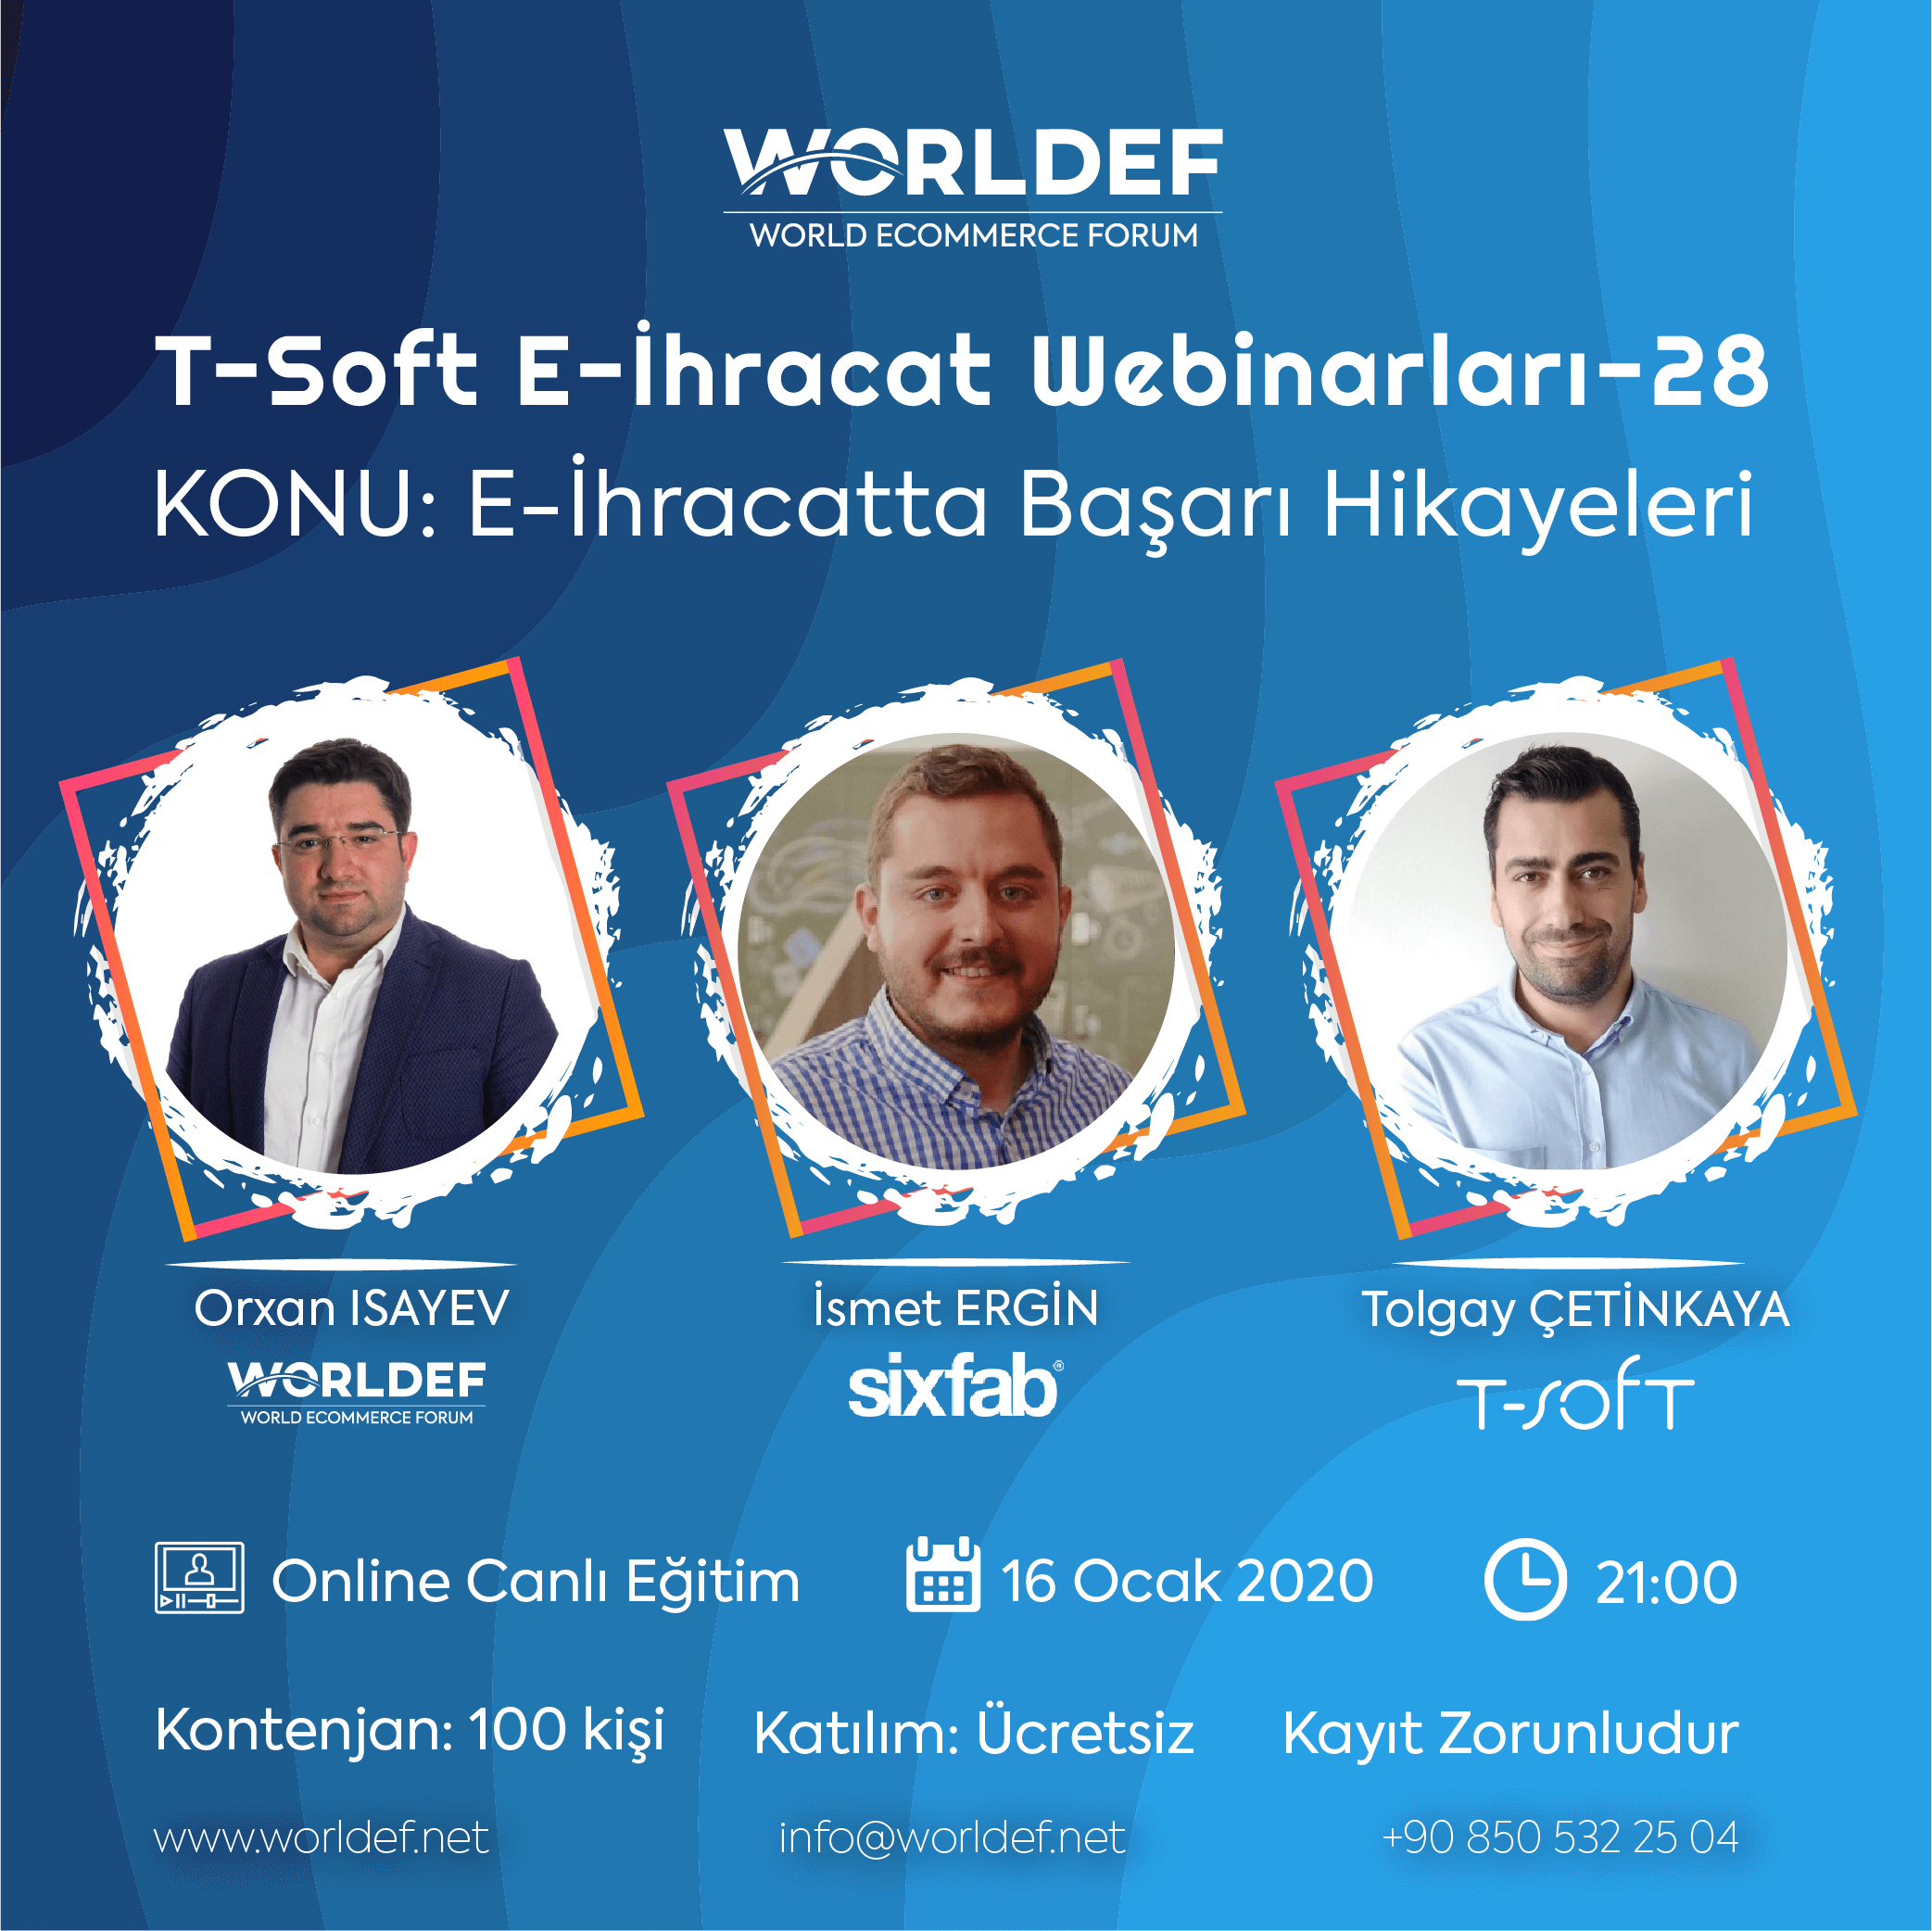 """In the cross-border e-commerce webinars series, we continue with the """"Cross-Border E-Commerce Success Stories"""" this week. This week's guest will be İsmet Ergin, the founder of Robotistan.com!"""